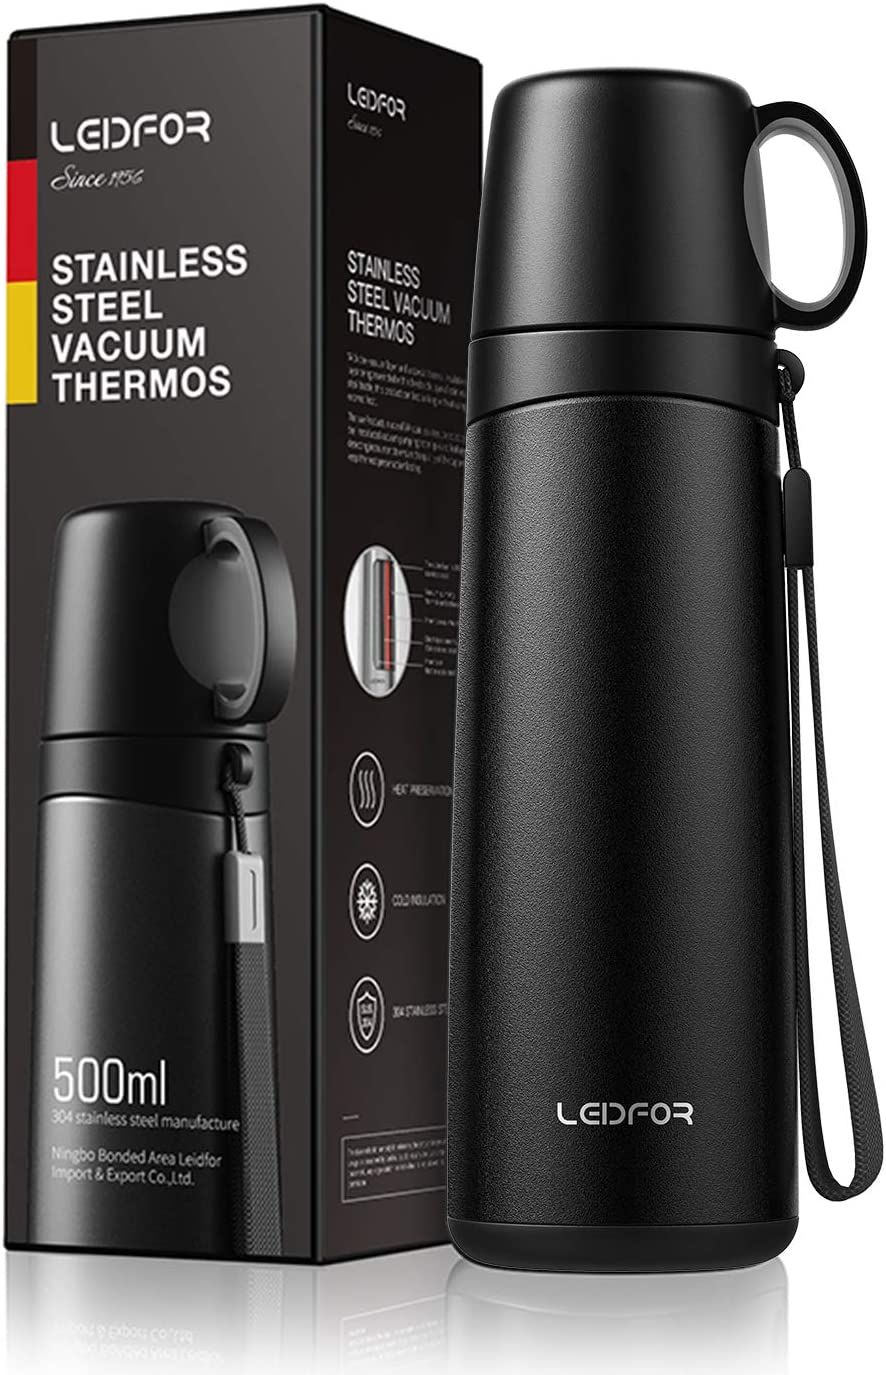 Leidfor Coffee Thermos Travel Mug Vacuum Insulated Thermal Water Bottle Build-in Drinking Cup Stainless Steel Leakproof 17Ounce Black Matte Finish